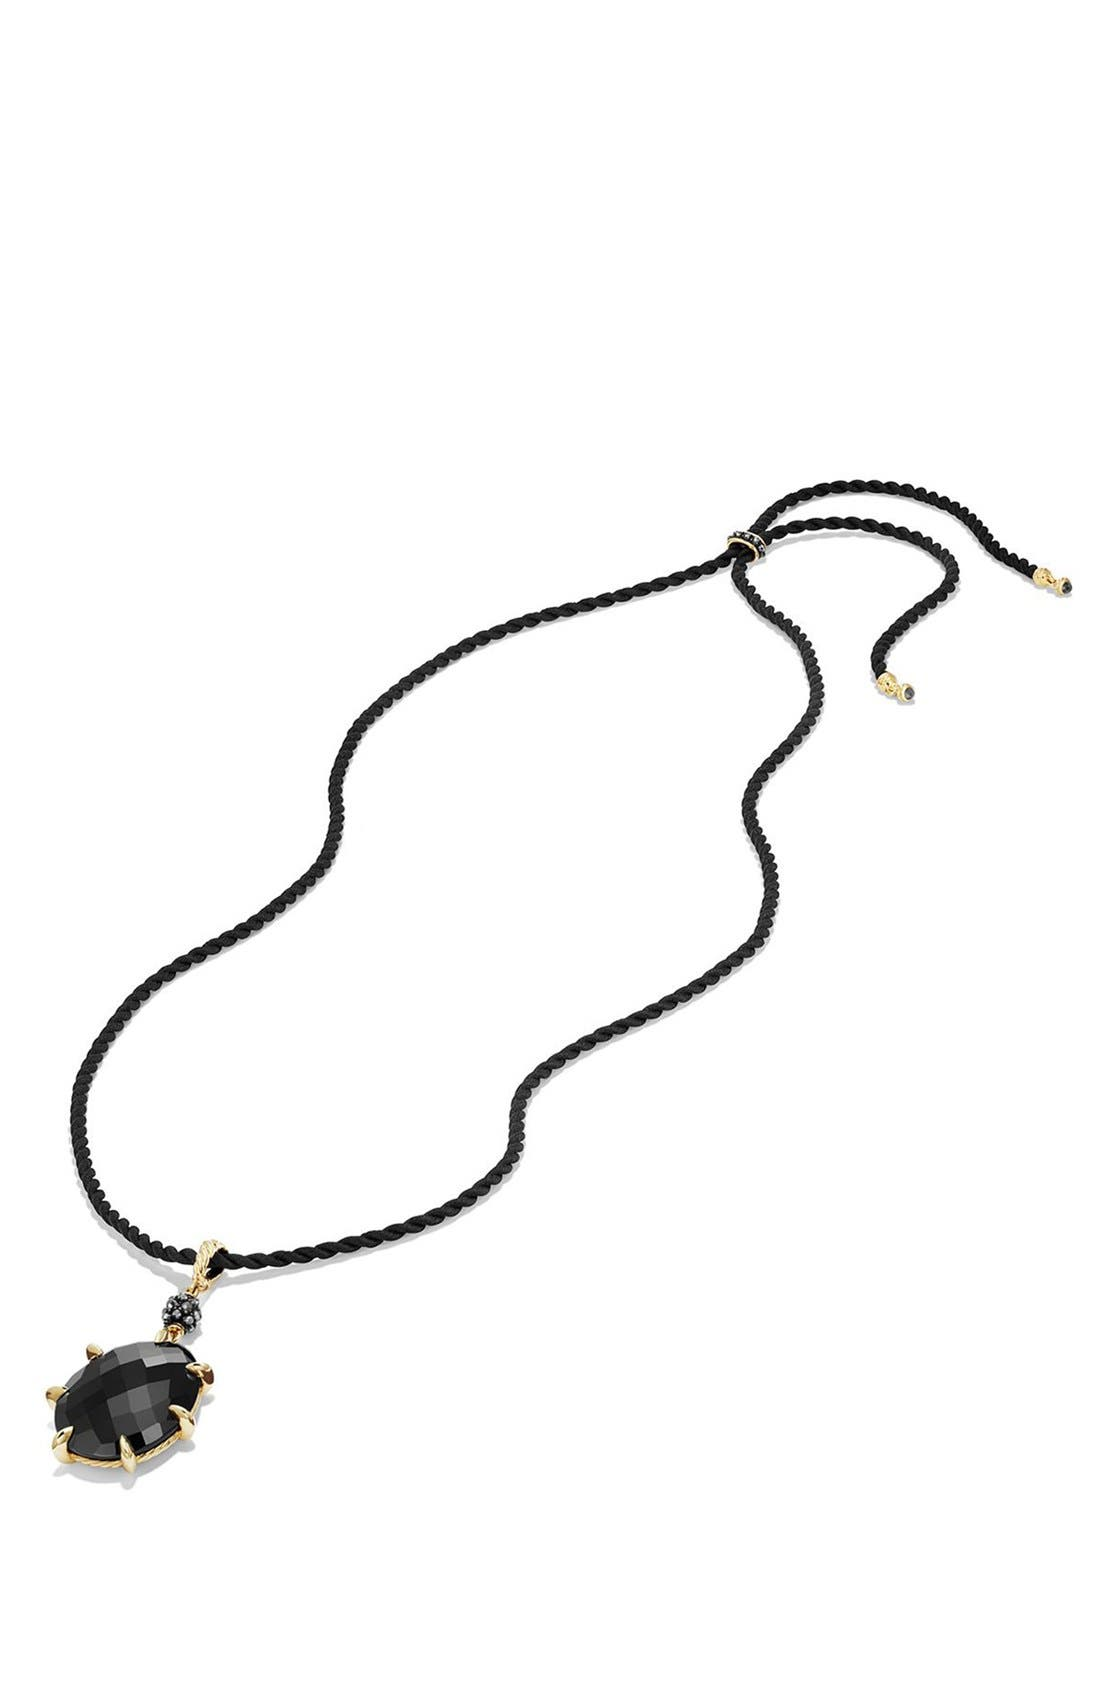 Cable Berries Long Station Pendant Necklace with 18K Gold,                             Alternate thumbnail 2, color,                             BLACK ONYX